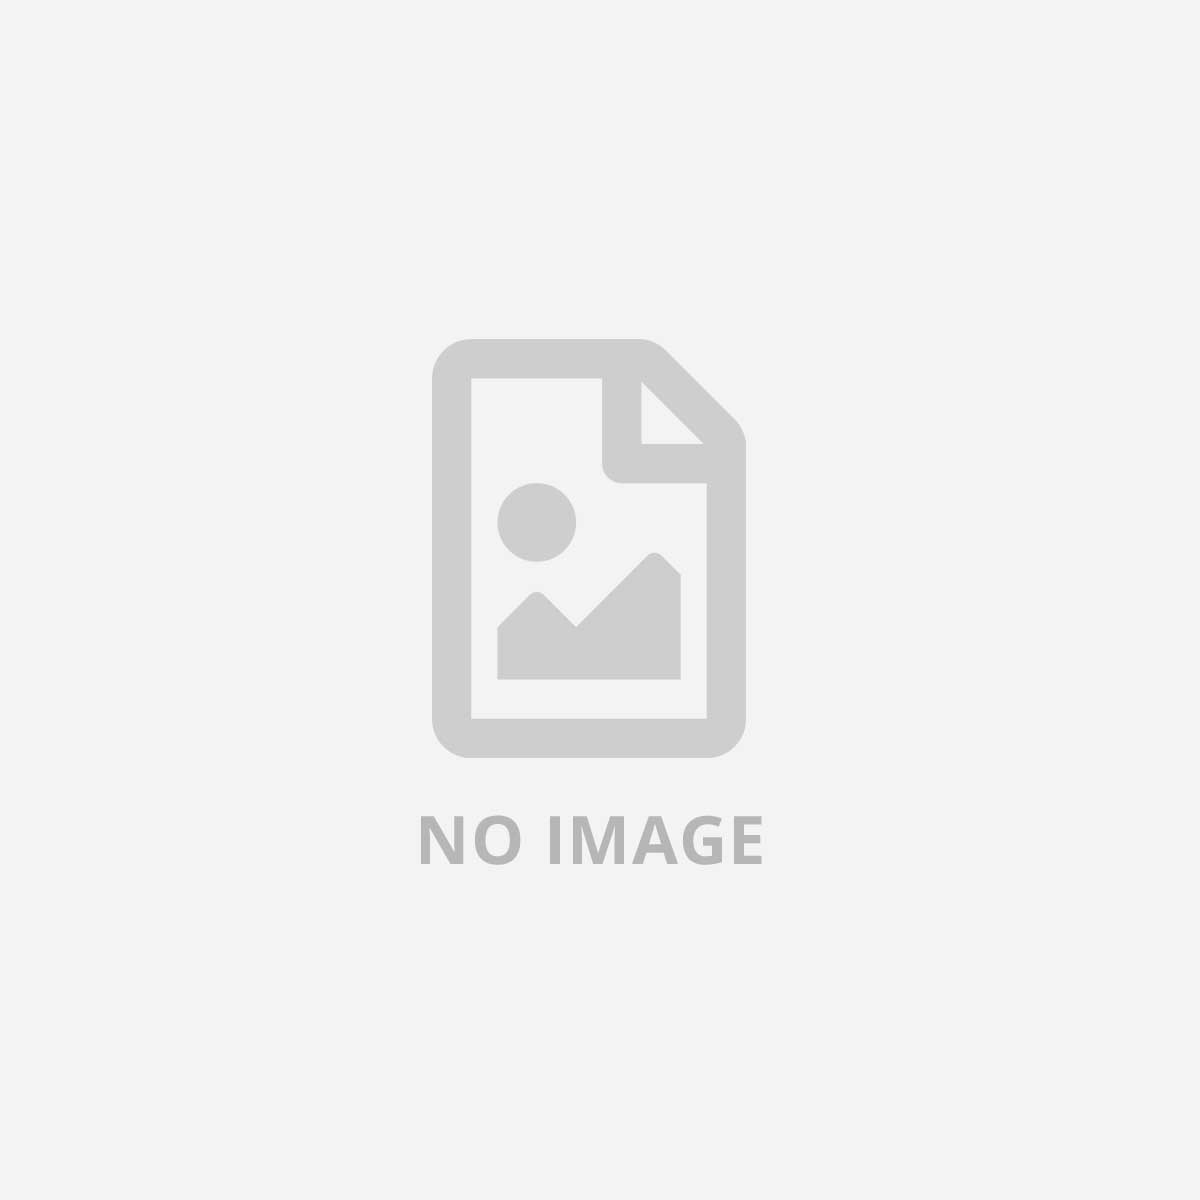 KENWOOD DASHCAM DRV-A301 TFT LCD FULL HD2.7